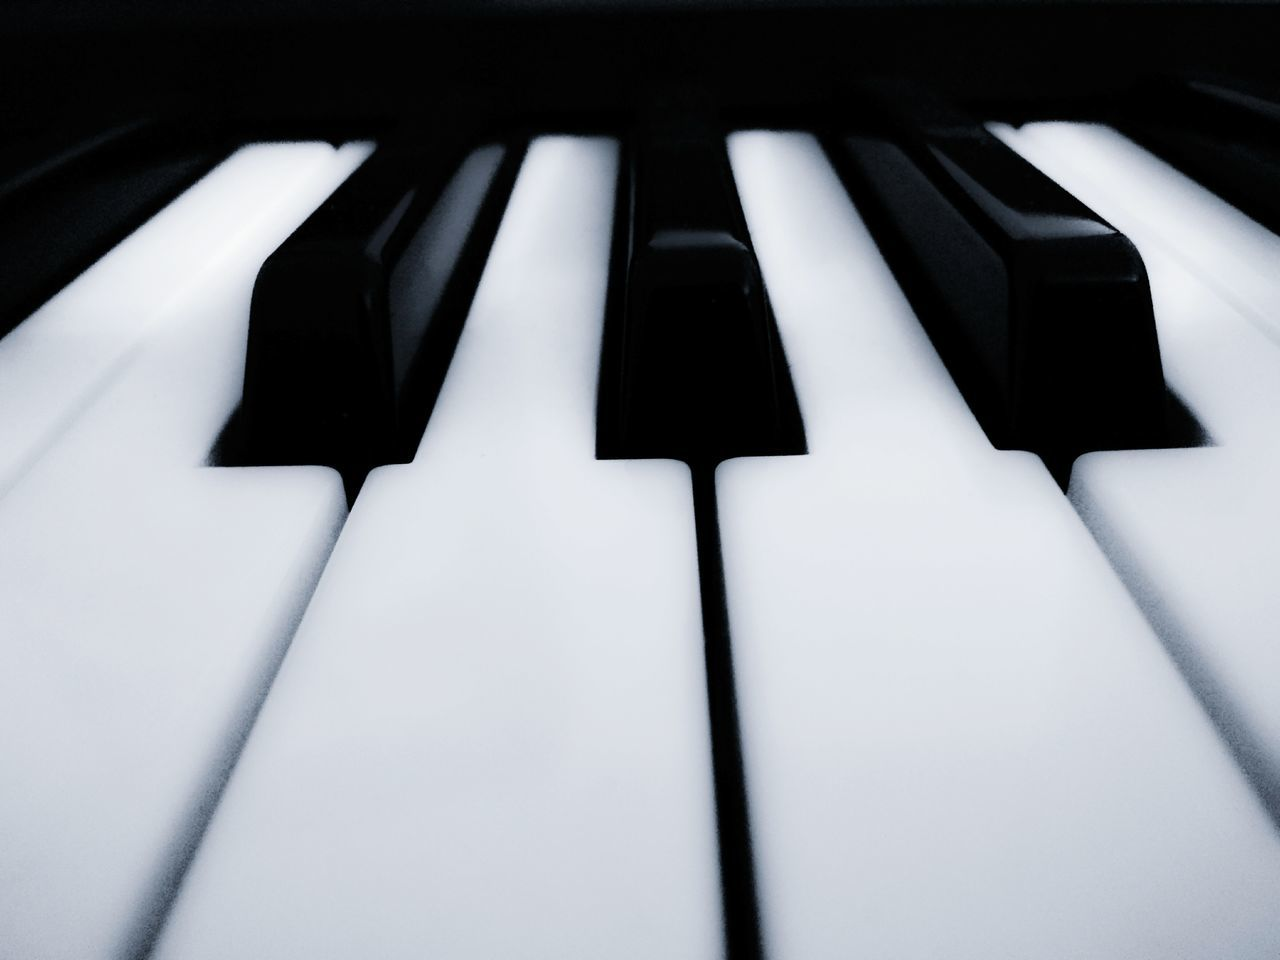 Close-up Piano Key Piano Indoors  No People 365 365 Day Challenge Musical Instrument Backgrounds 365project Blackandwhite Black And White Black & White Indoor Phone Blackandwhite Photography StillLifePhotography PhonePhotography Still Life Photography Phone Photography Close Up Photography Indoor Photography Phonecamera Still Life Closeupshot